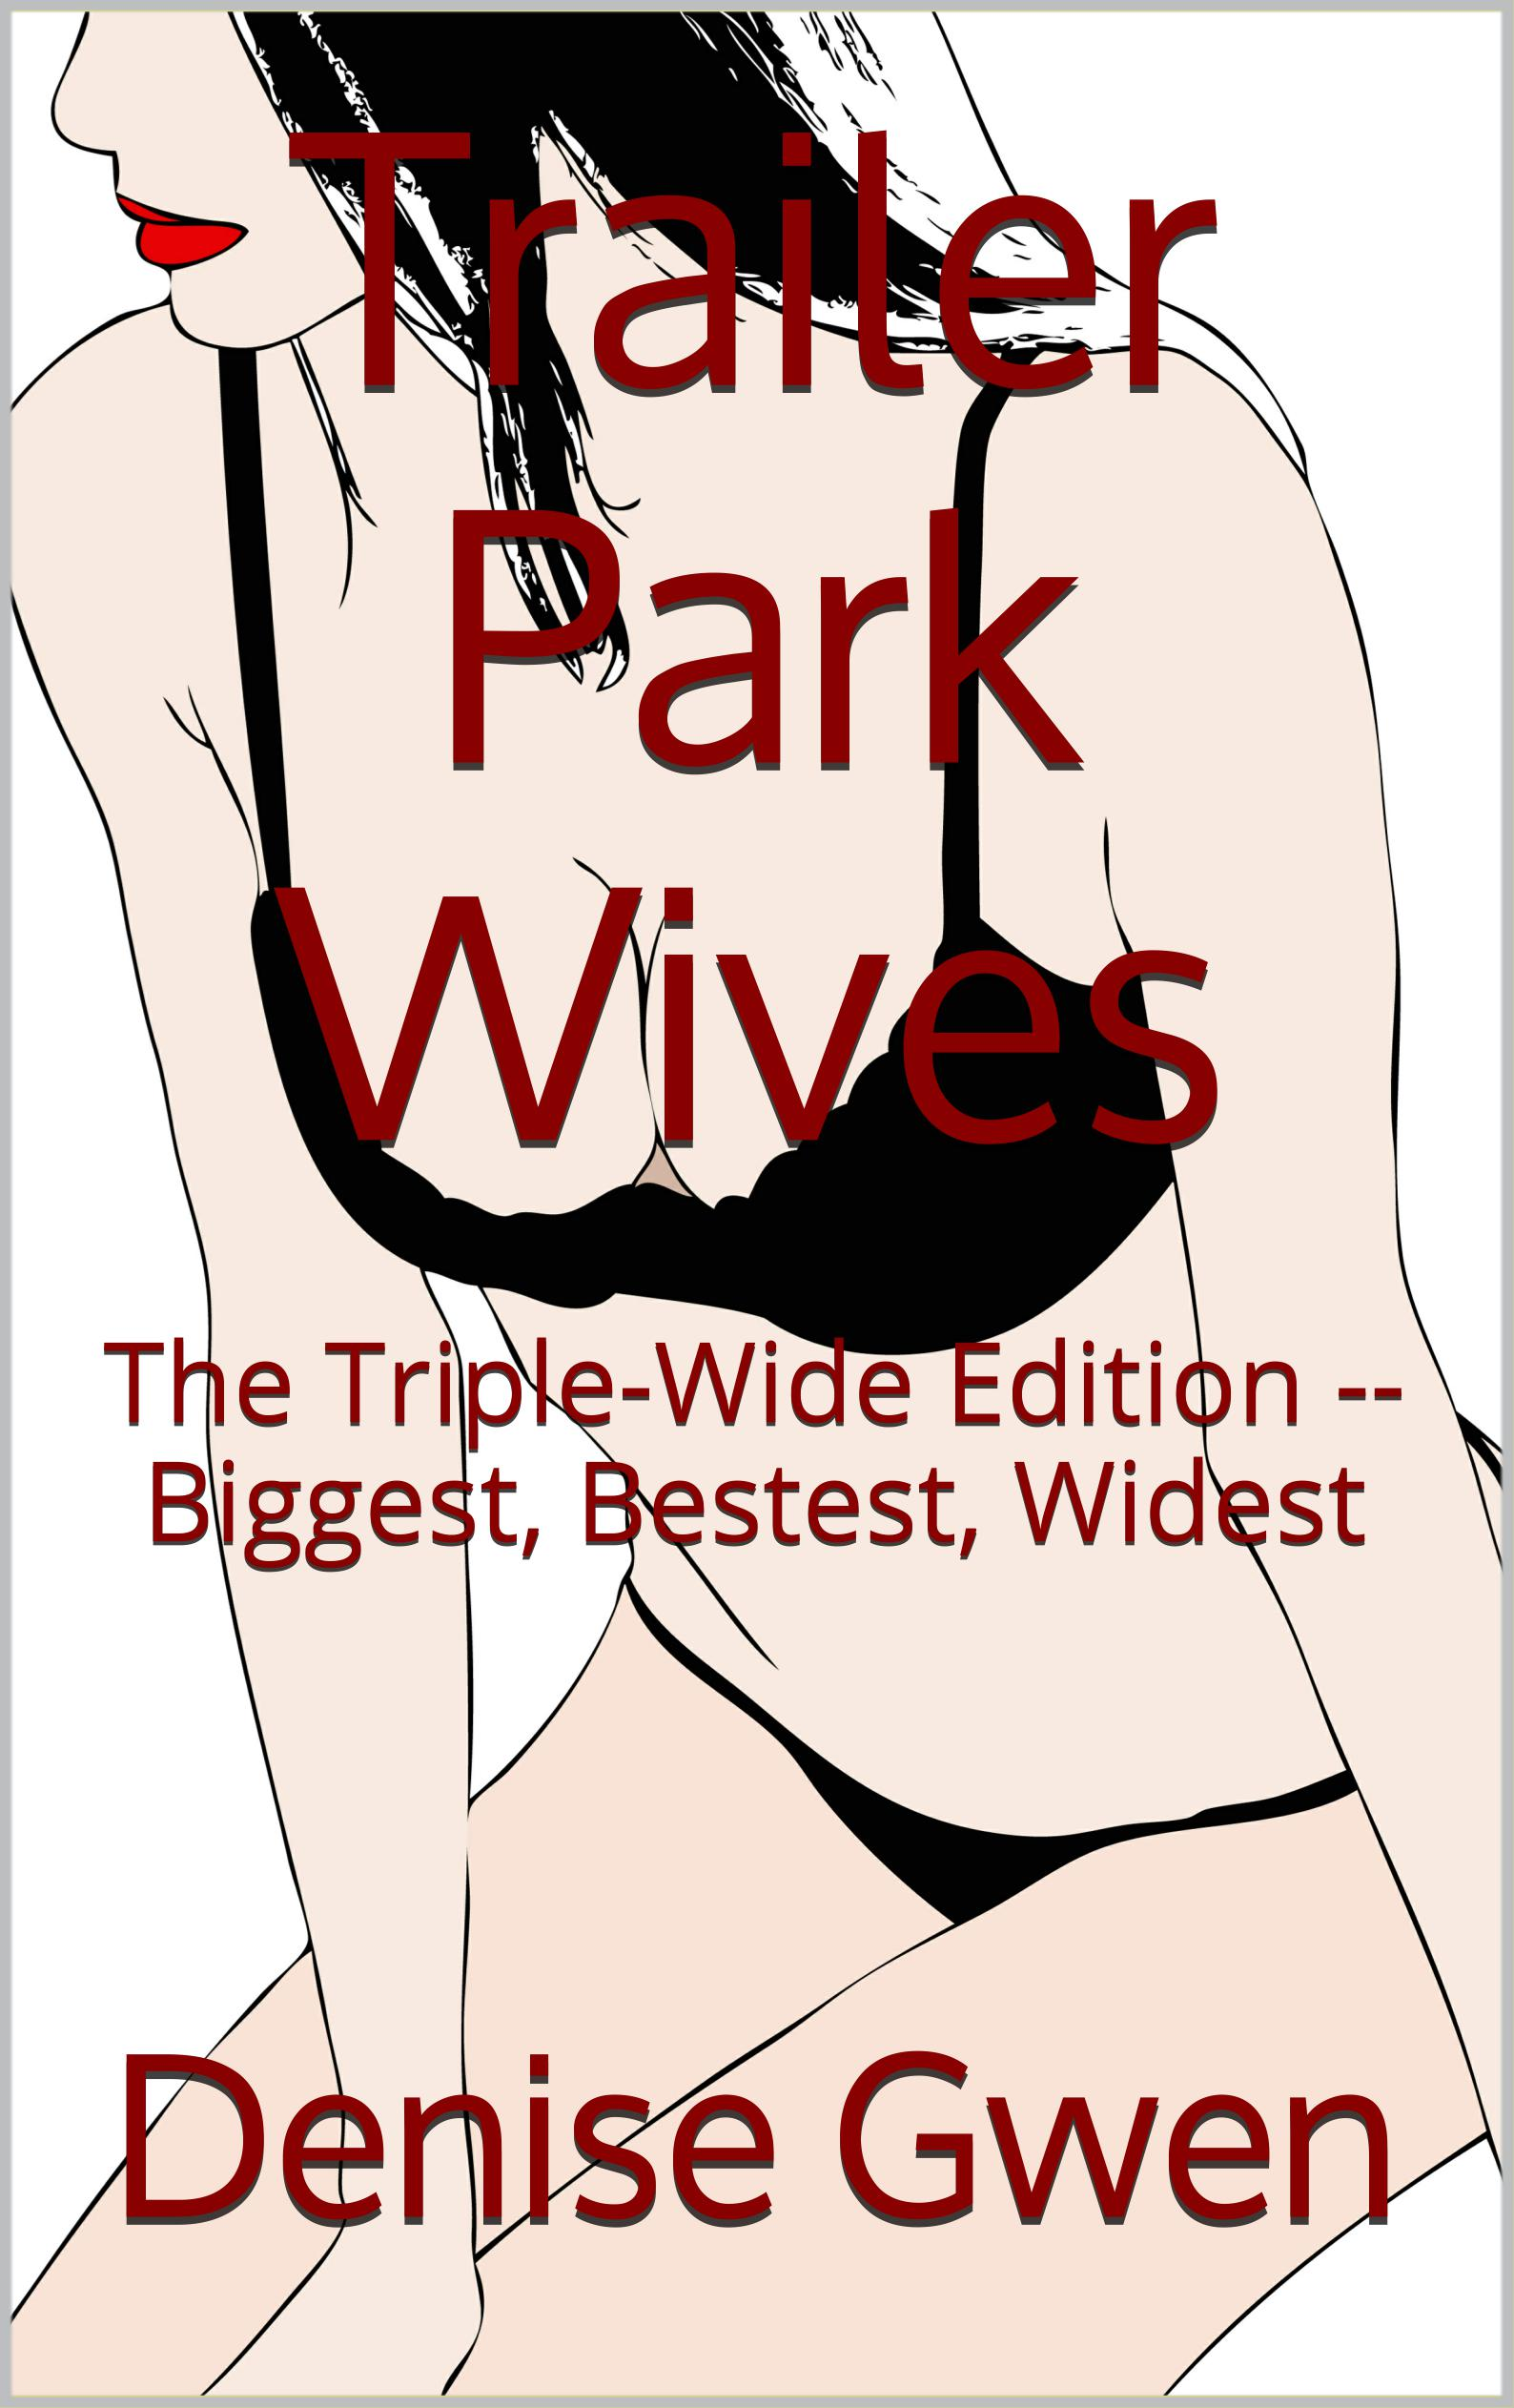 Trailer Park Wives Three -- The Triple-Wide Edition audiobook by Denise Gwen